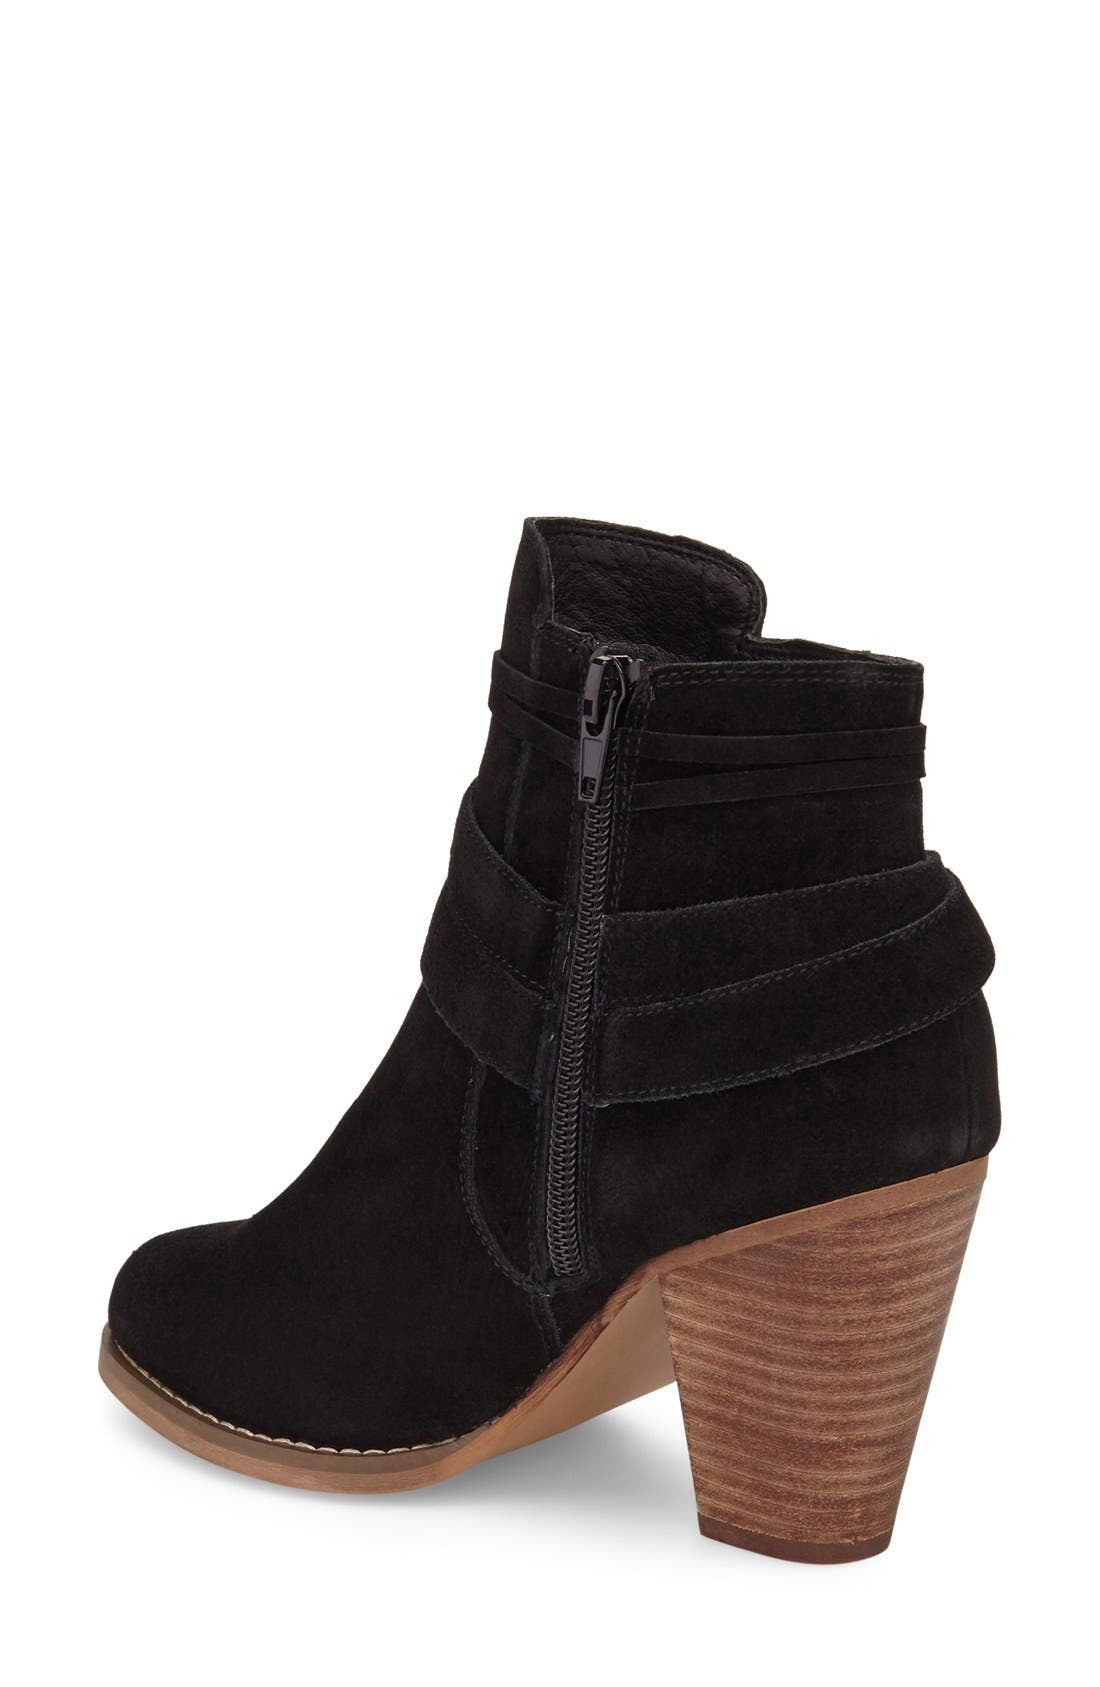 Rumi Bootie,                             Alternate thumbnail 3, color,                             BLACK